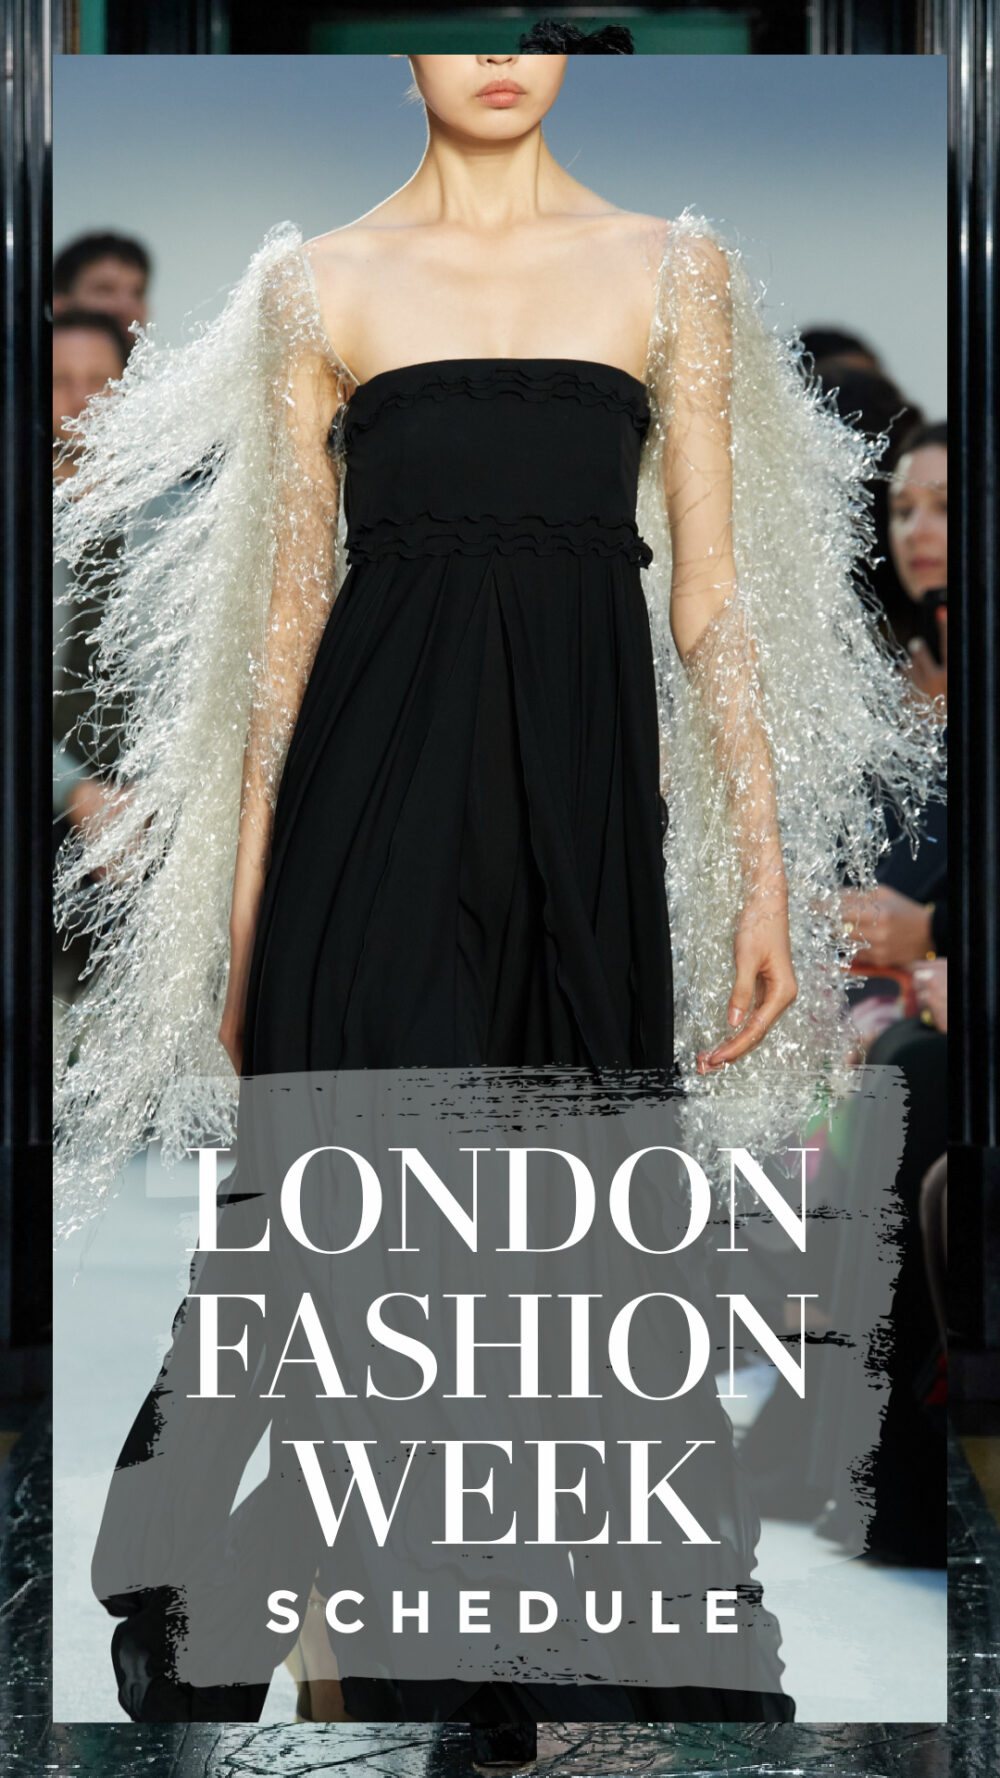 The Official LFW Fall 2020 schedule includes a mix of digital and limited in-person events. I DreaminLace.com #FashionWeek #LondonFashion